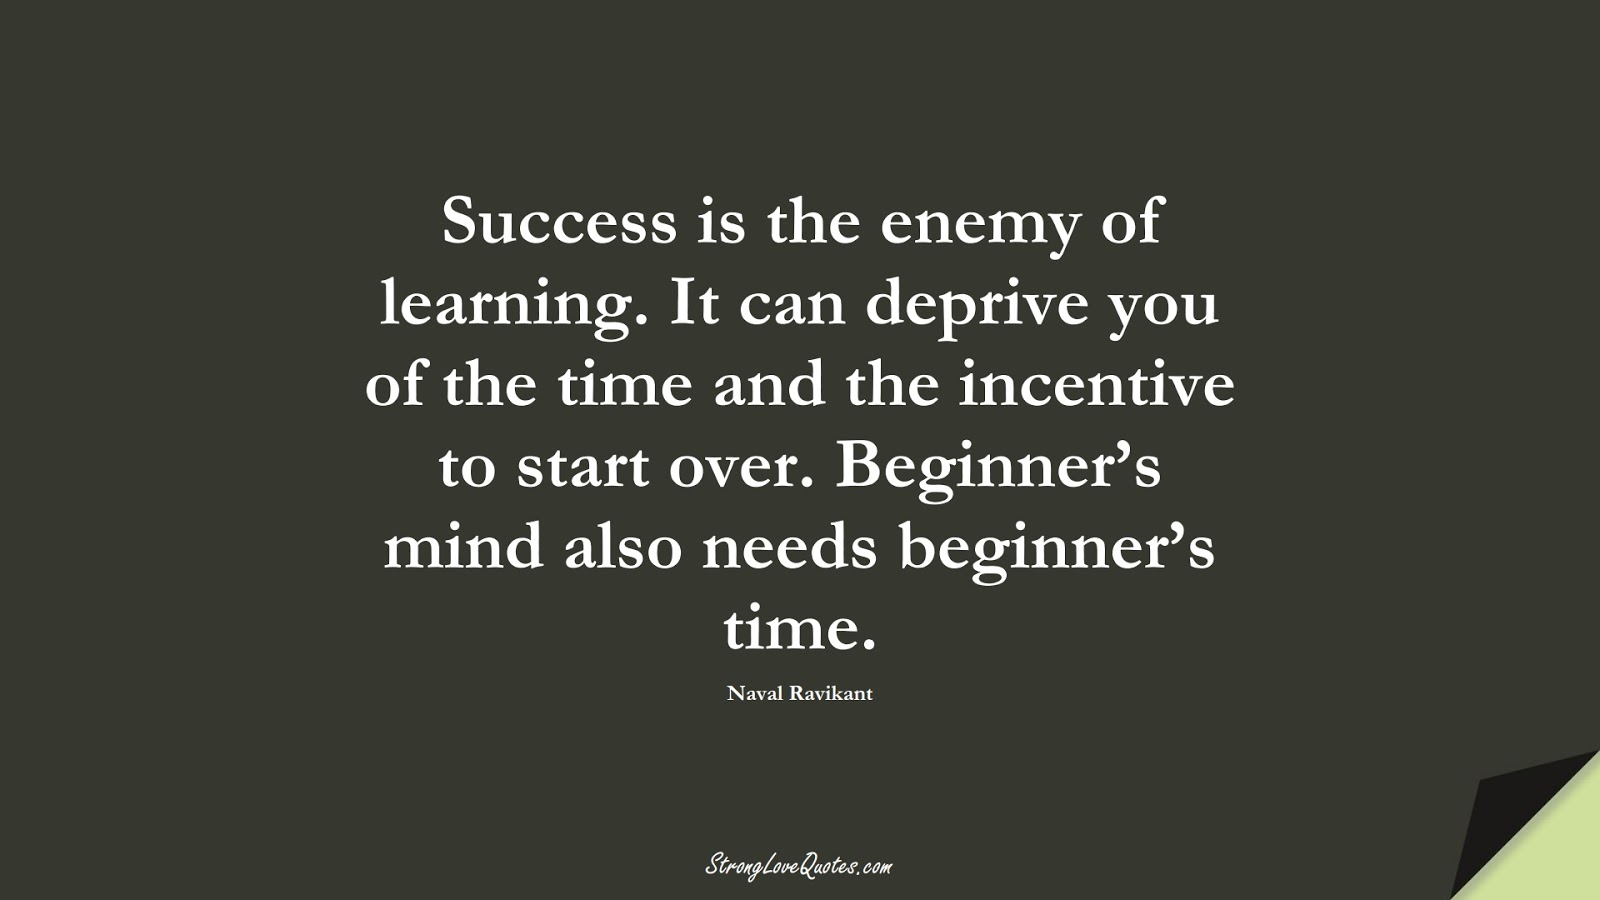 Success is the enemy of learning. It can deprive you of the time and the incentive to start over. Beginner's mind also needs beginner's time. (Naval Ravikant);  #LearningQuotes